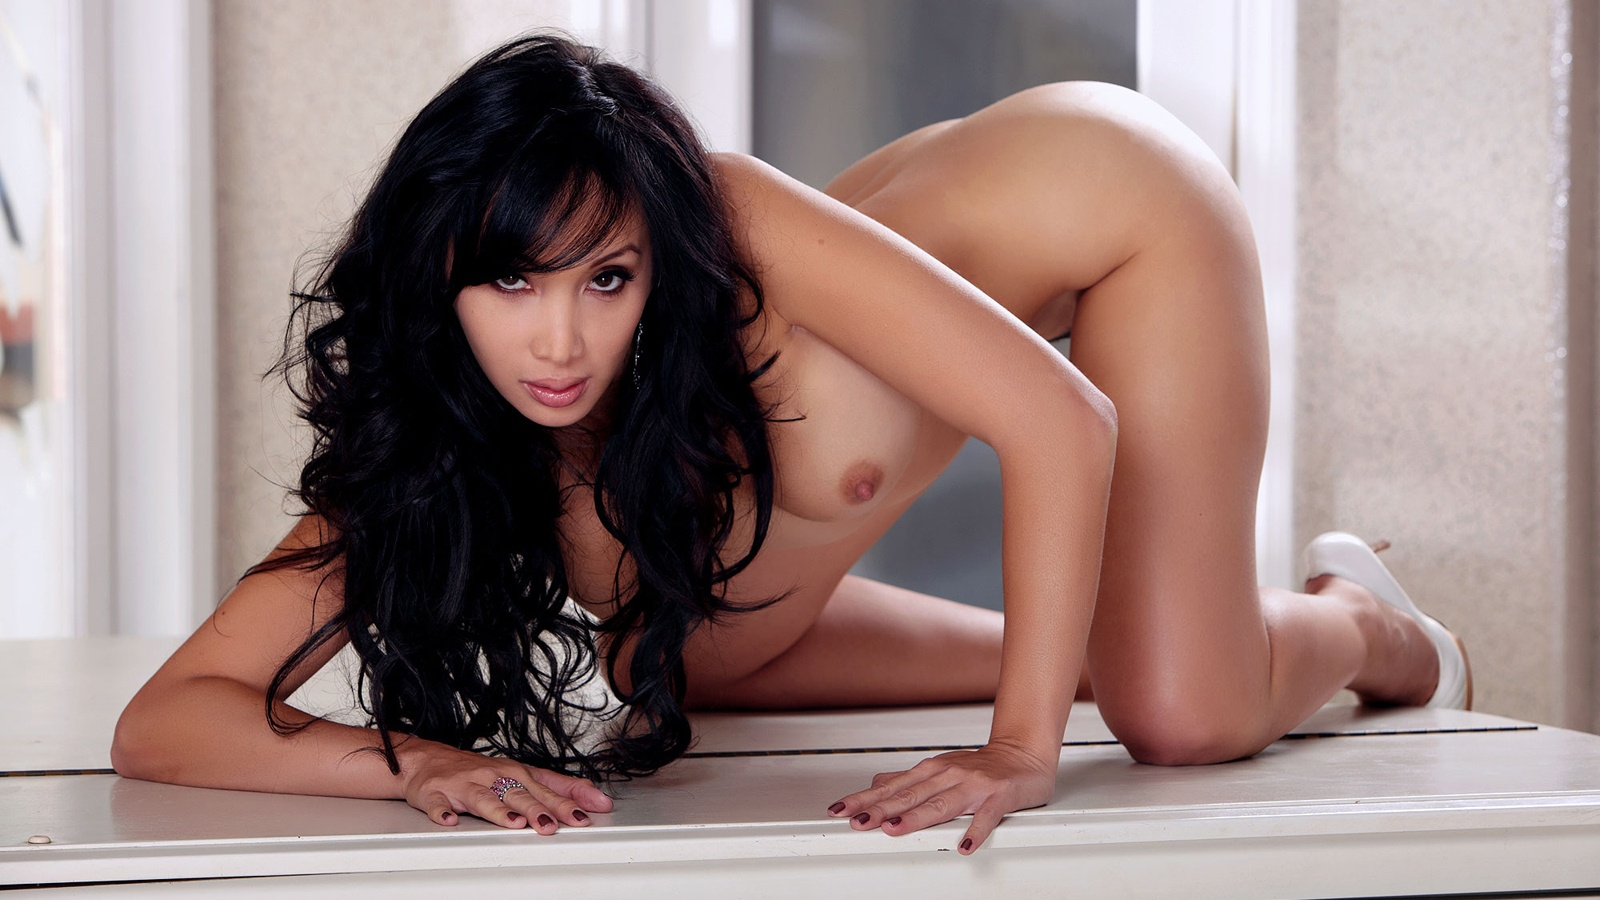 Hot asian american girls having sex